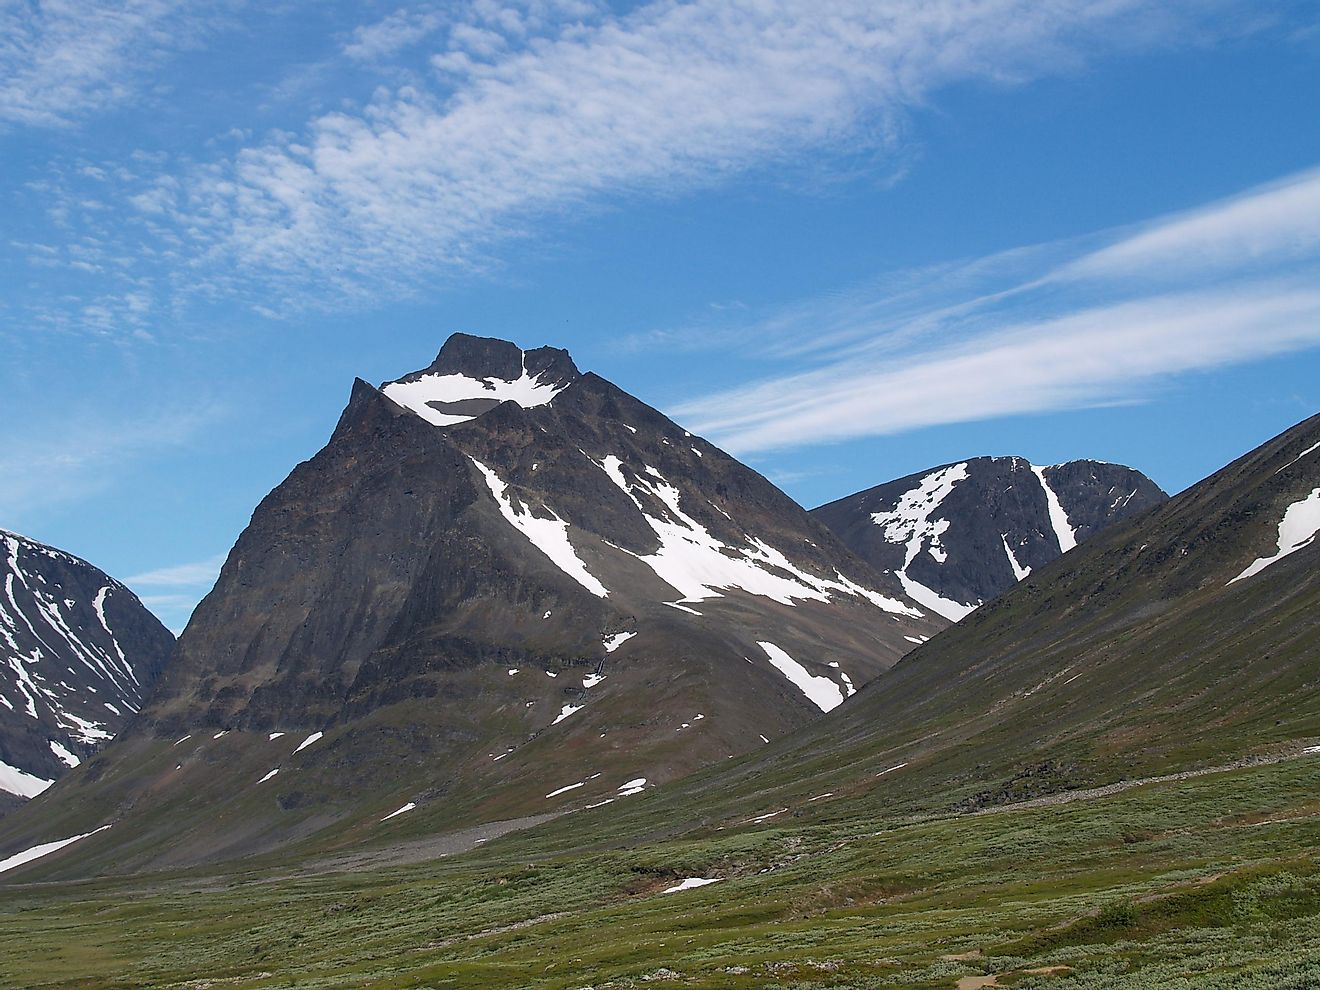 Kebnekaise is the tallest mountain found in Sweden.